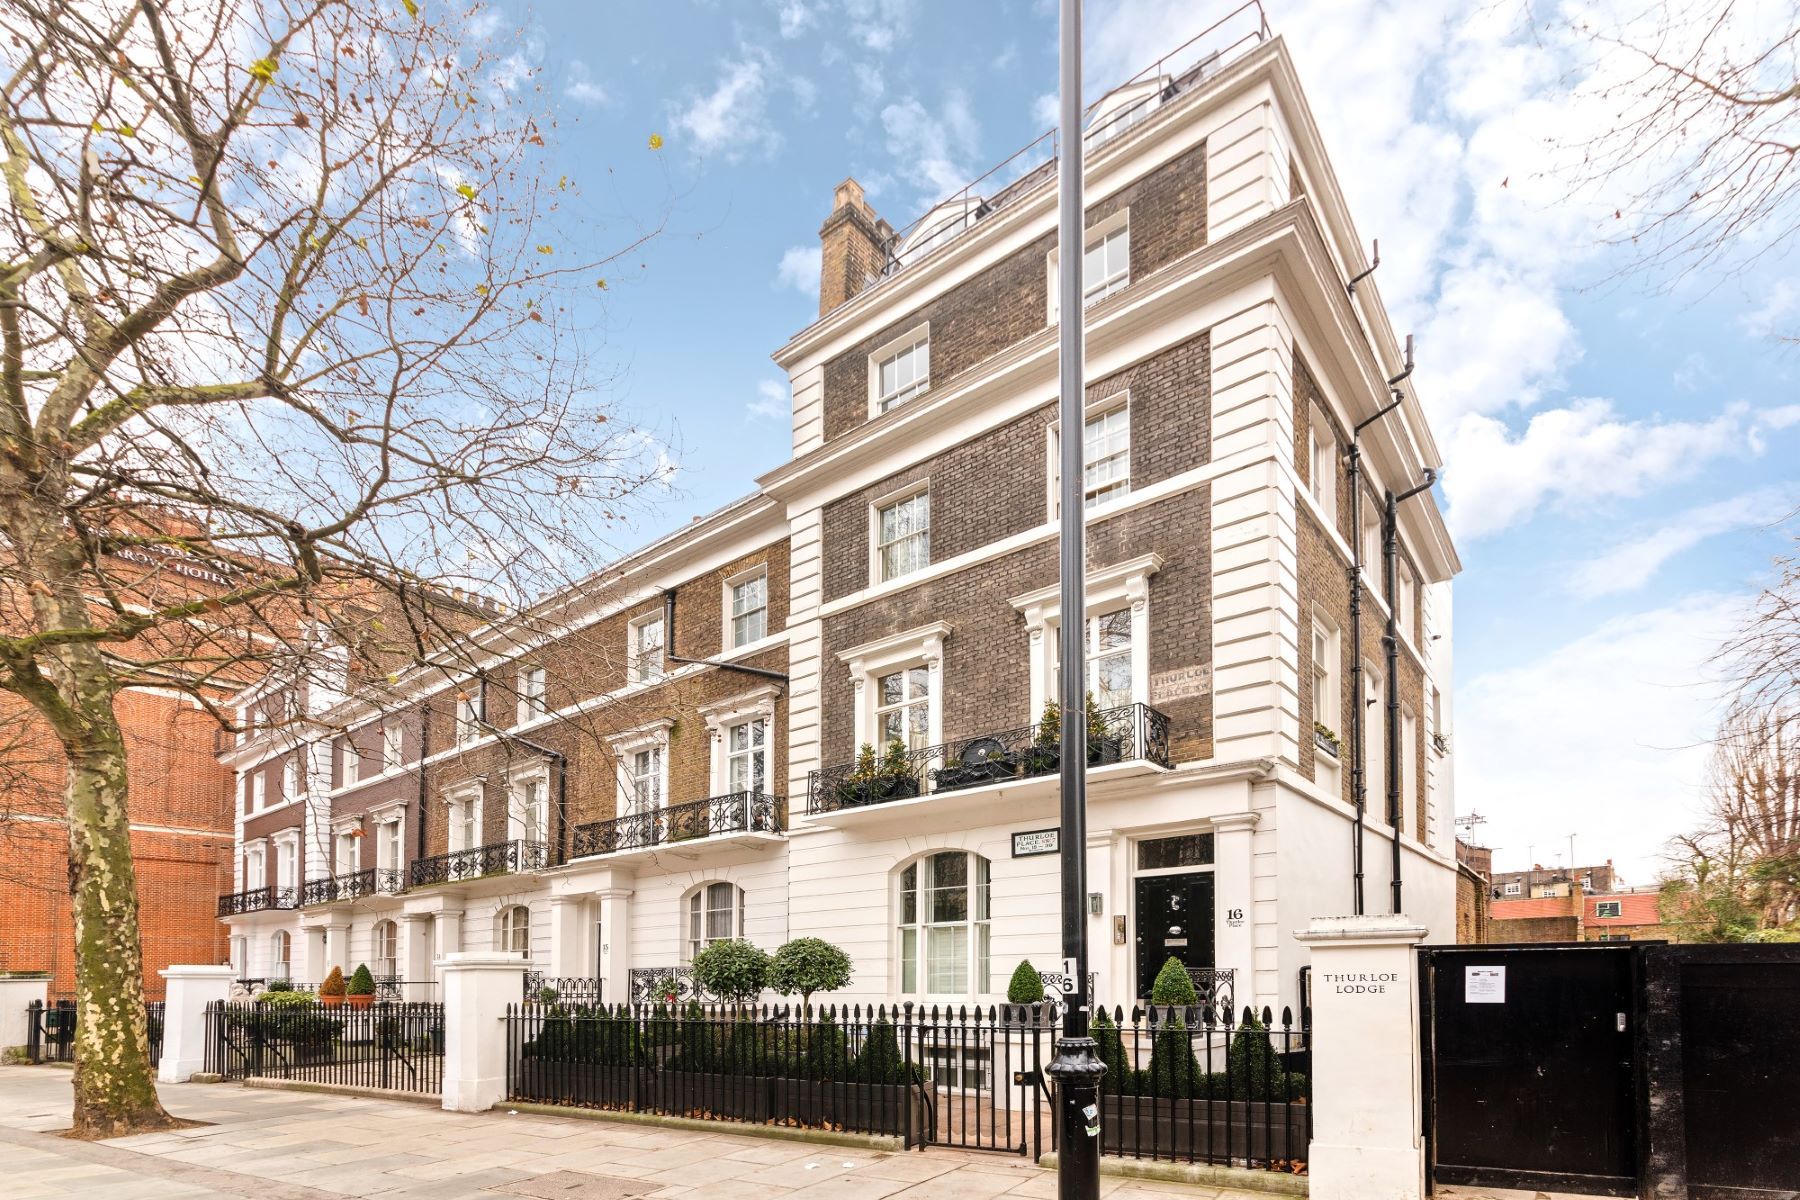 Apartment for Sale at Thurloe Place, Knightsbridge London, England, United Kingdom